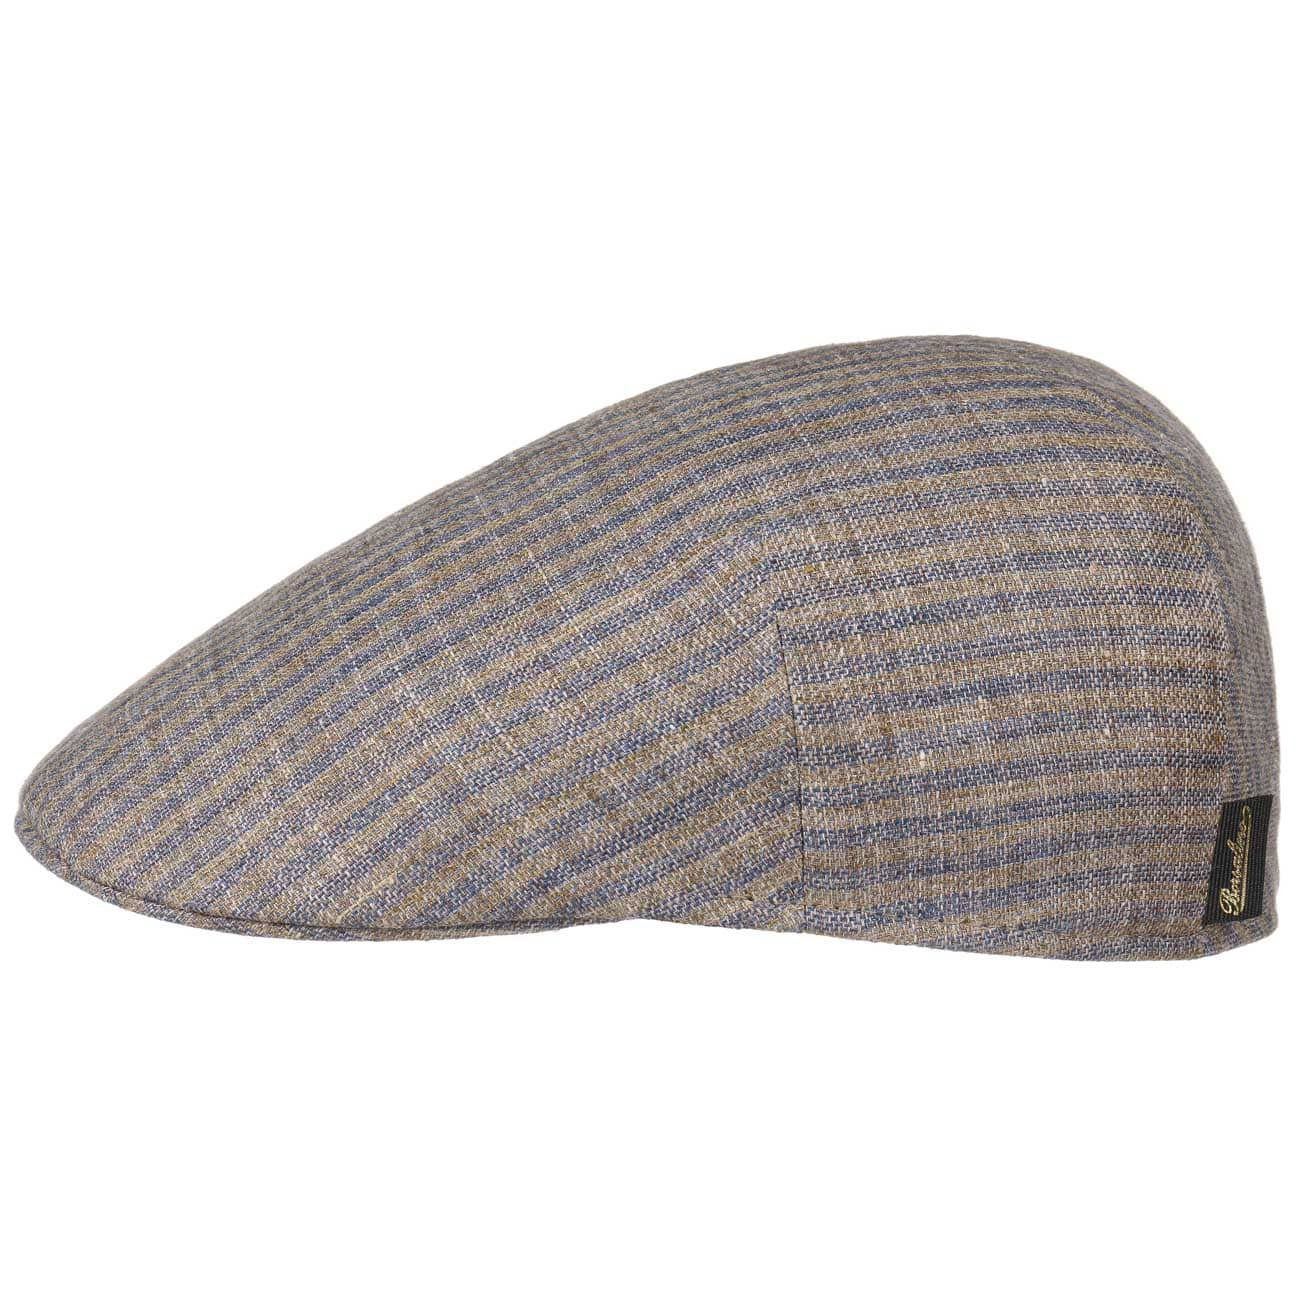 Gorra Duckbill Stripes by Borsalino